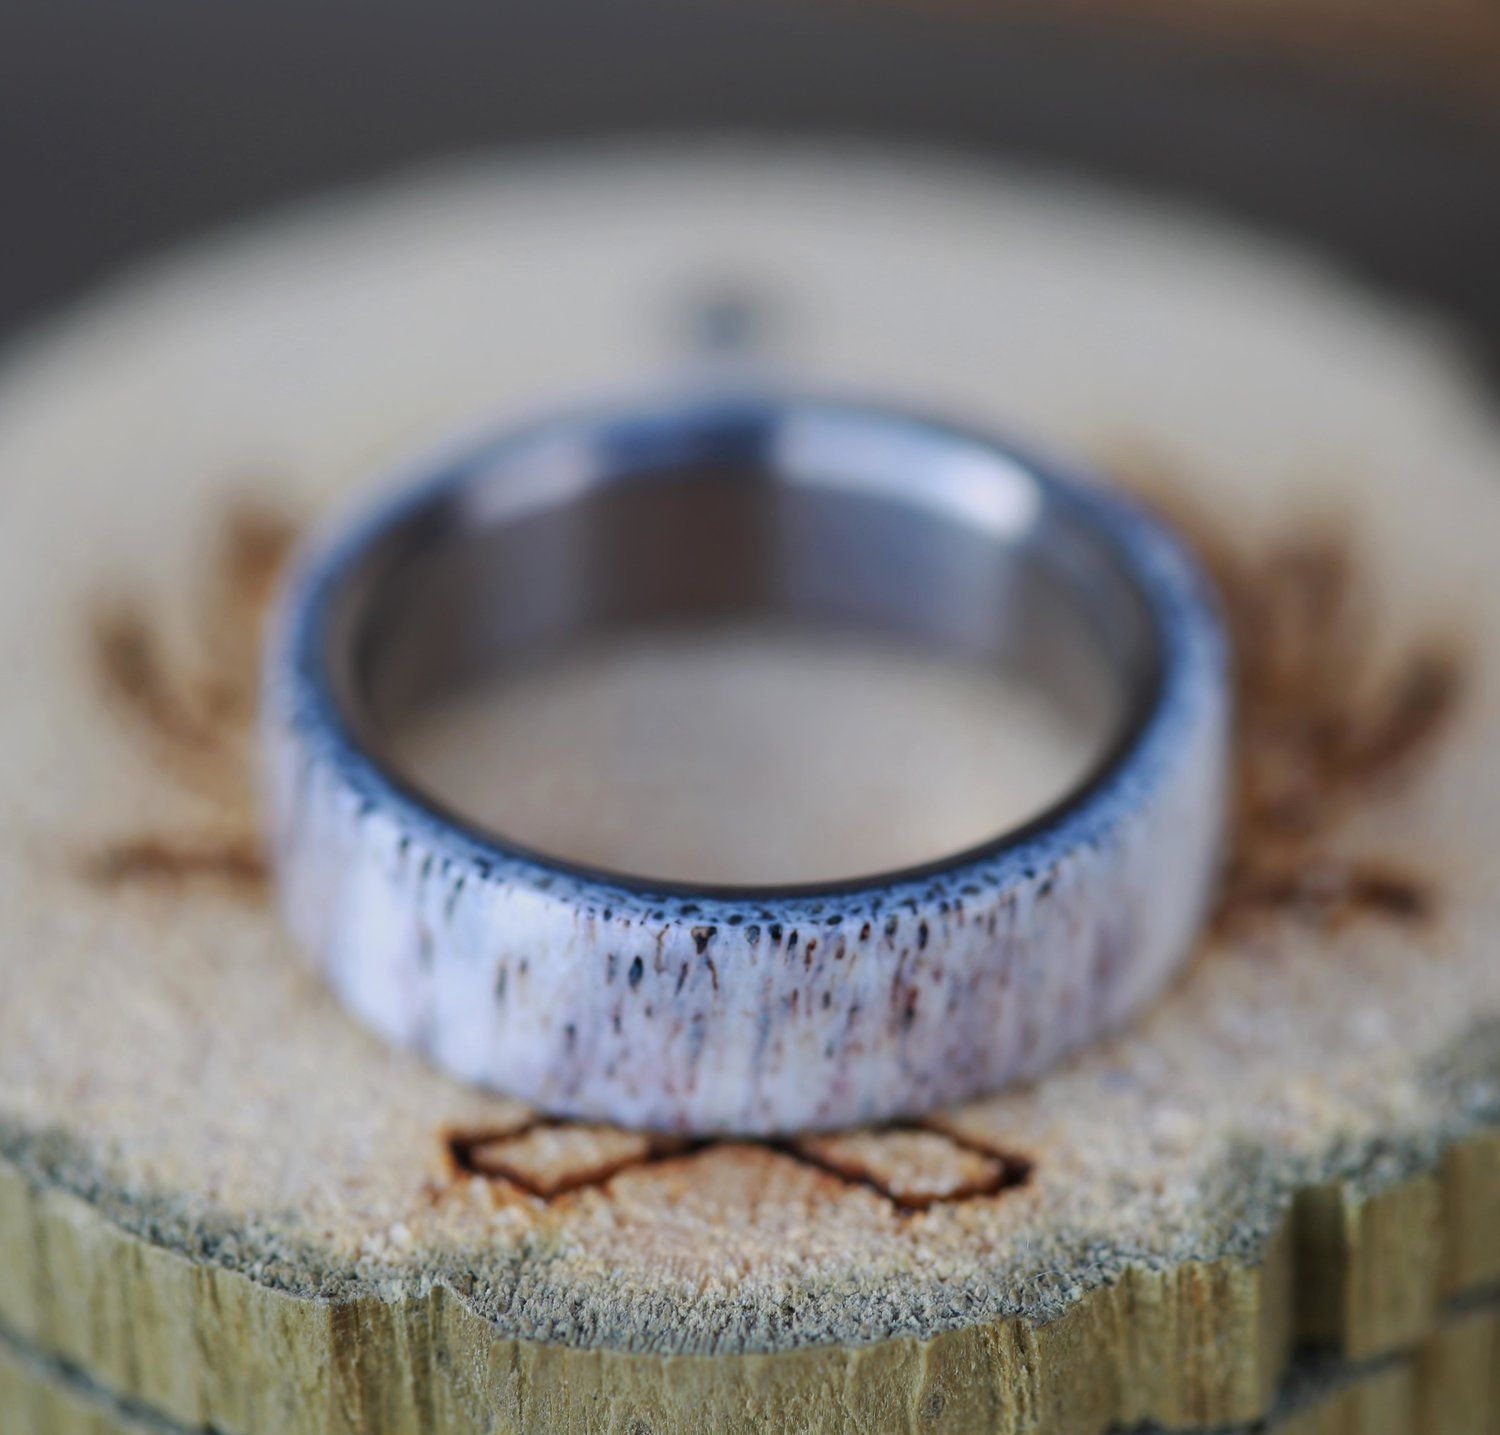 designs s inlay elk rings men inspirational of shed antler com matvuk wedding head natural copper stag best with band